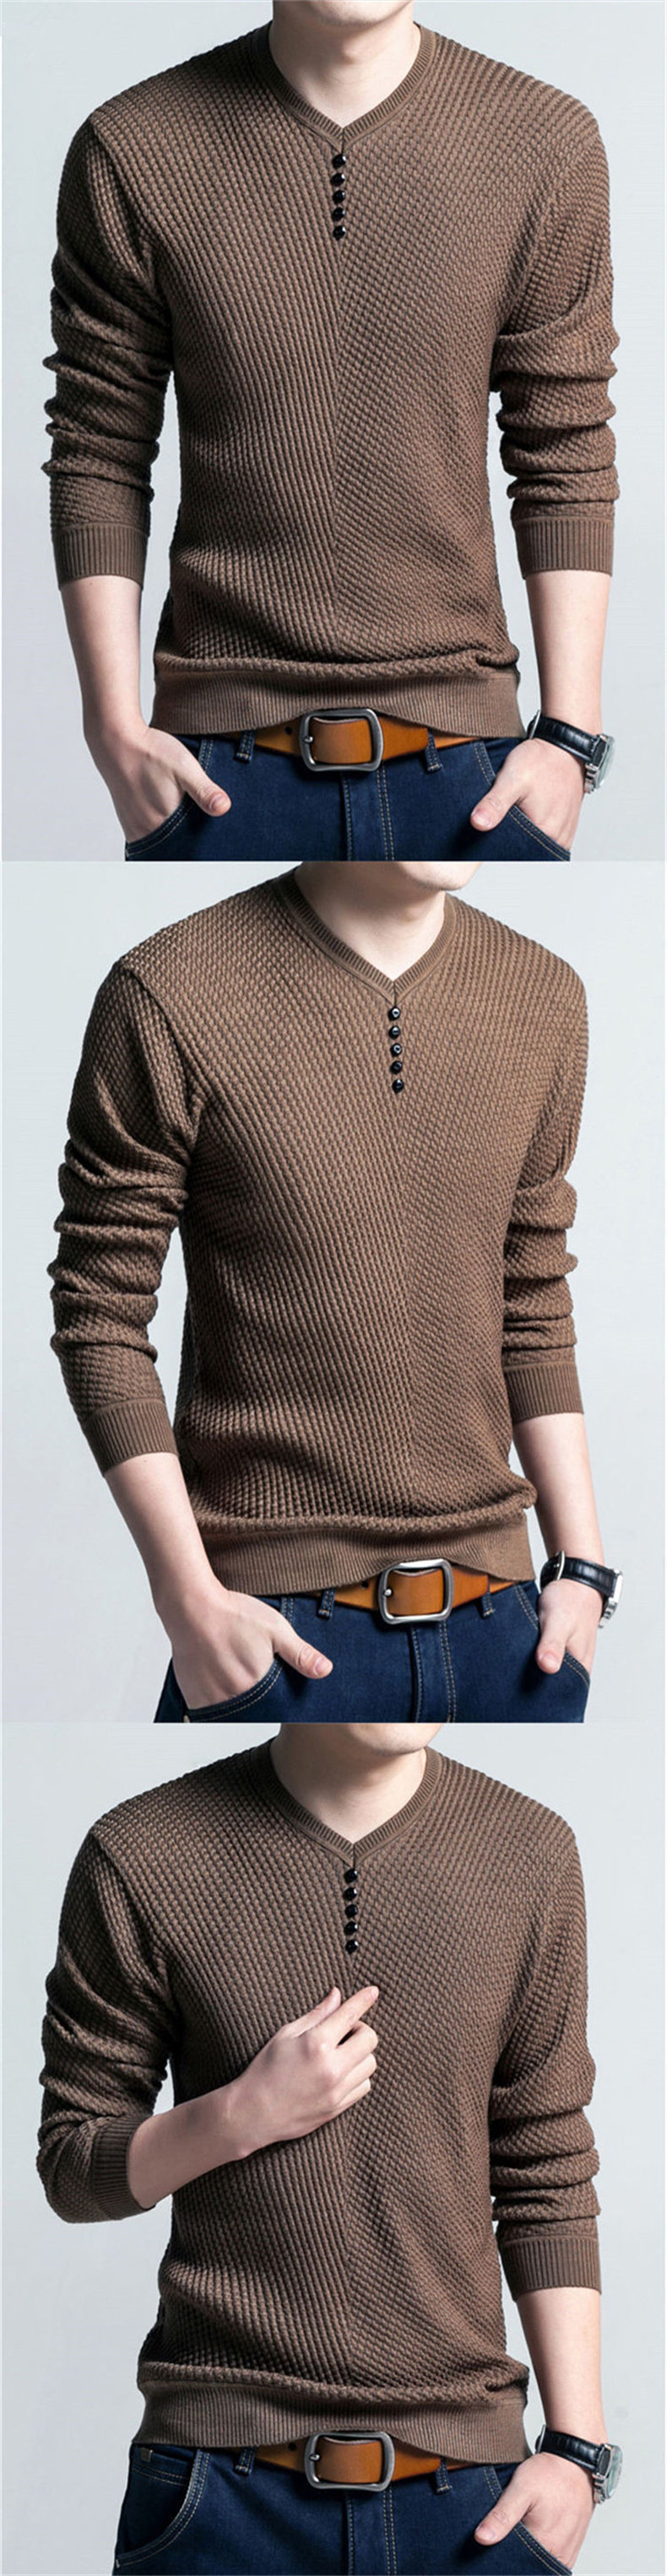 COODRONY Sweater Men Casual V-Neck Pullover Men Autumn Slim Fit Long Sleeve Shirt Mens Sweaters Knitted Cashmere Wool Pull Homme 5